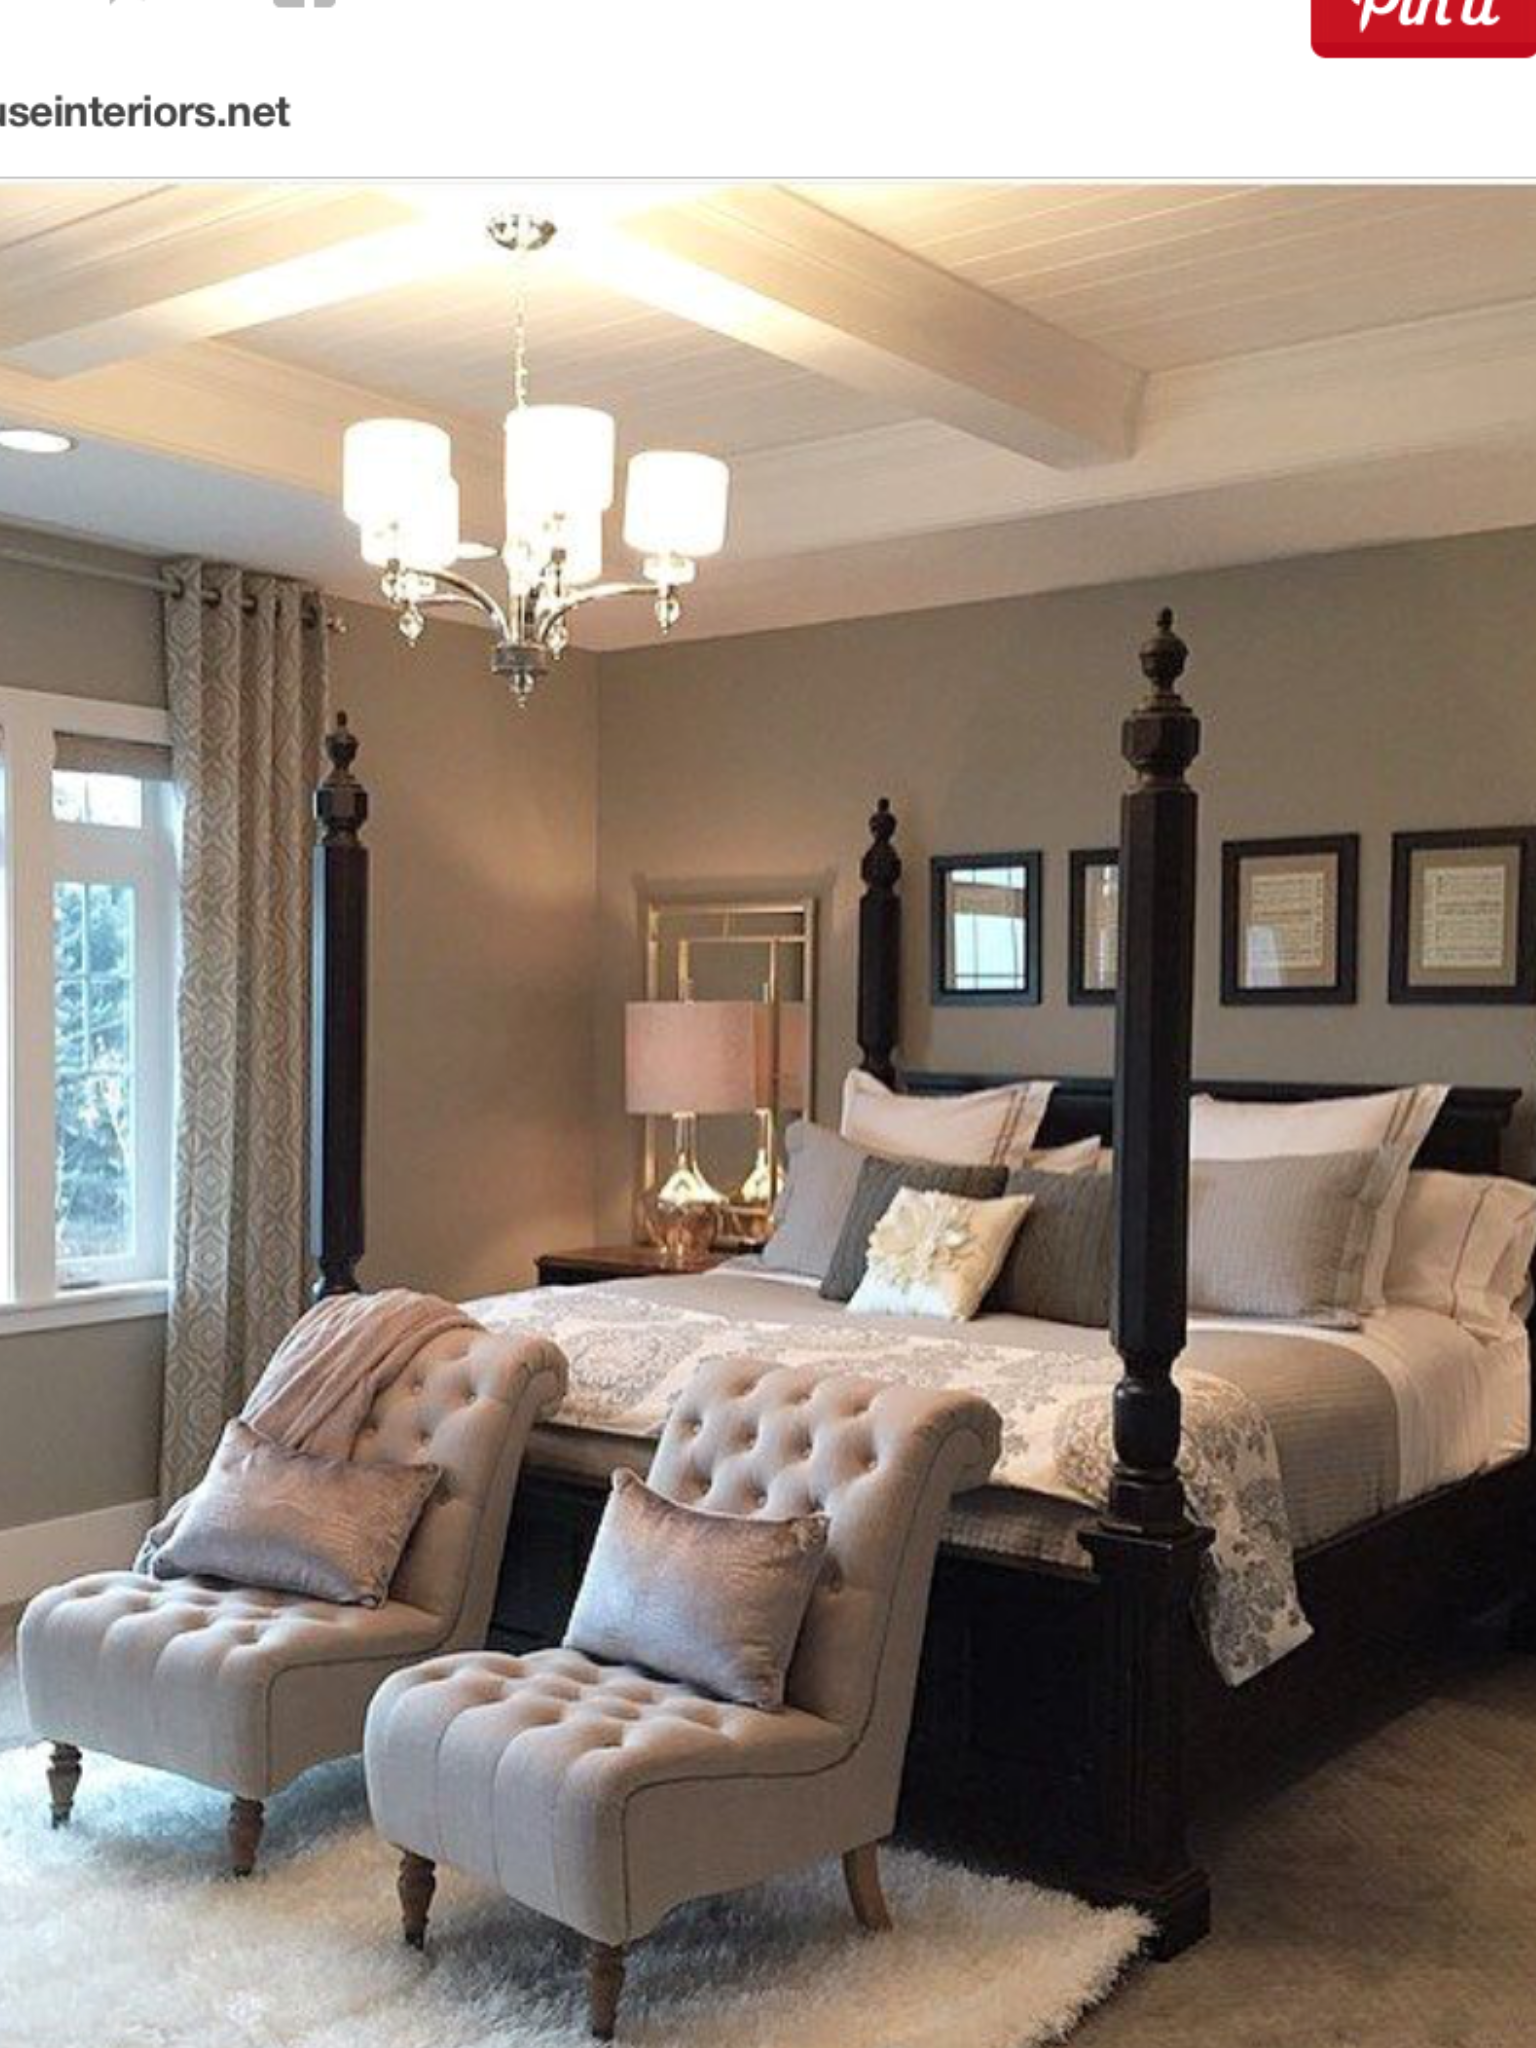 Remodel Bedroom, Master Bedrooms Decor